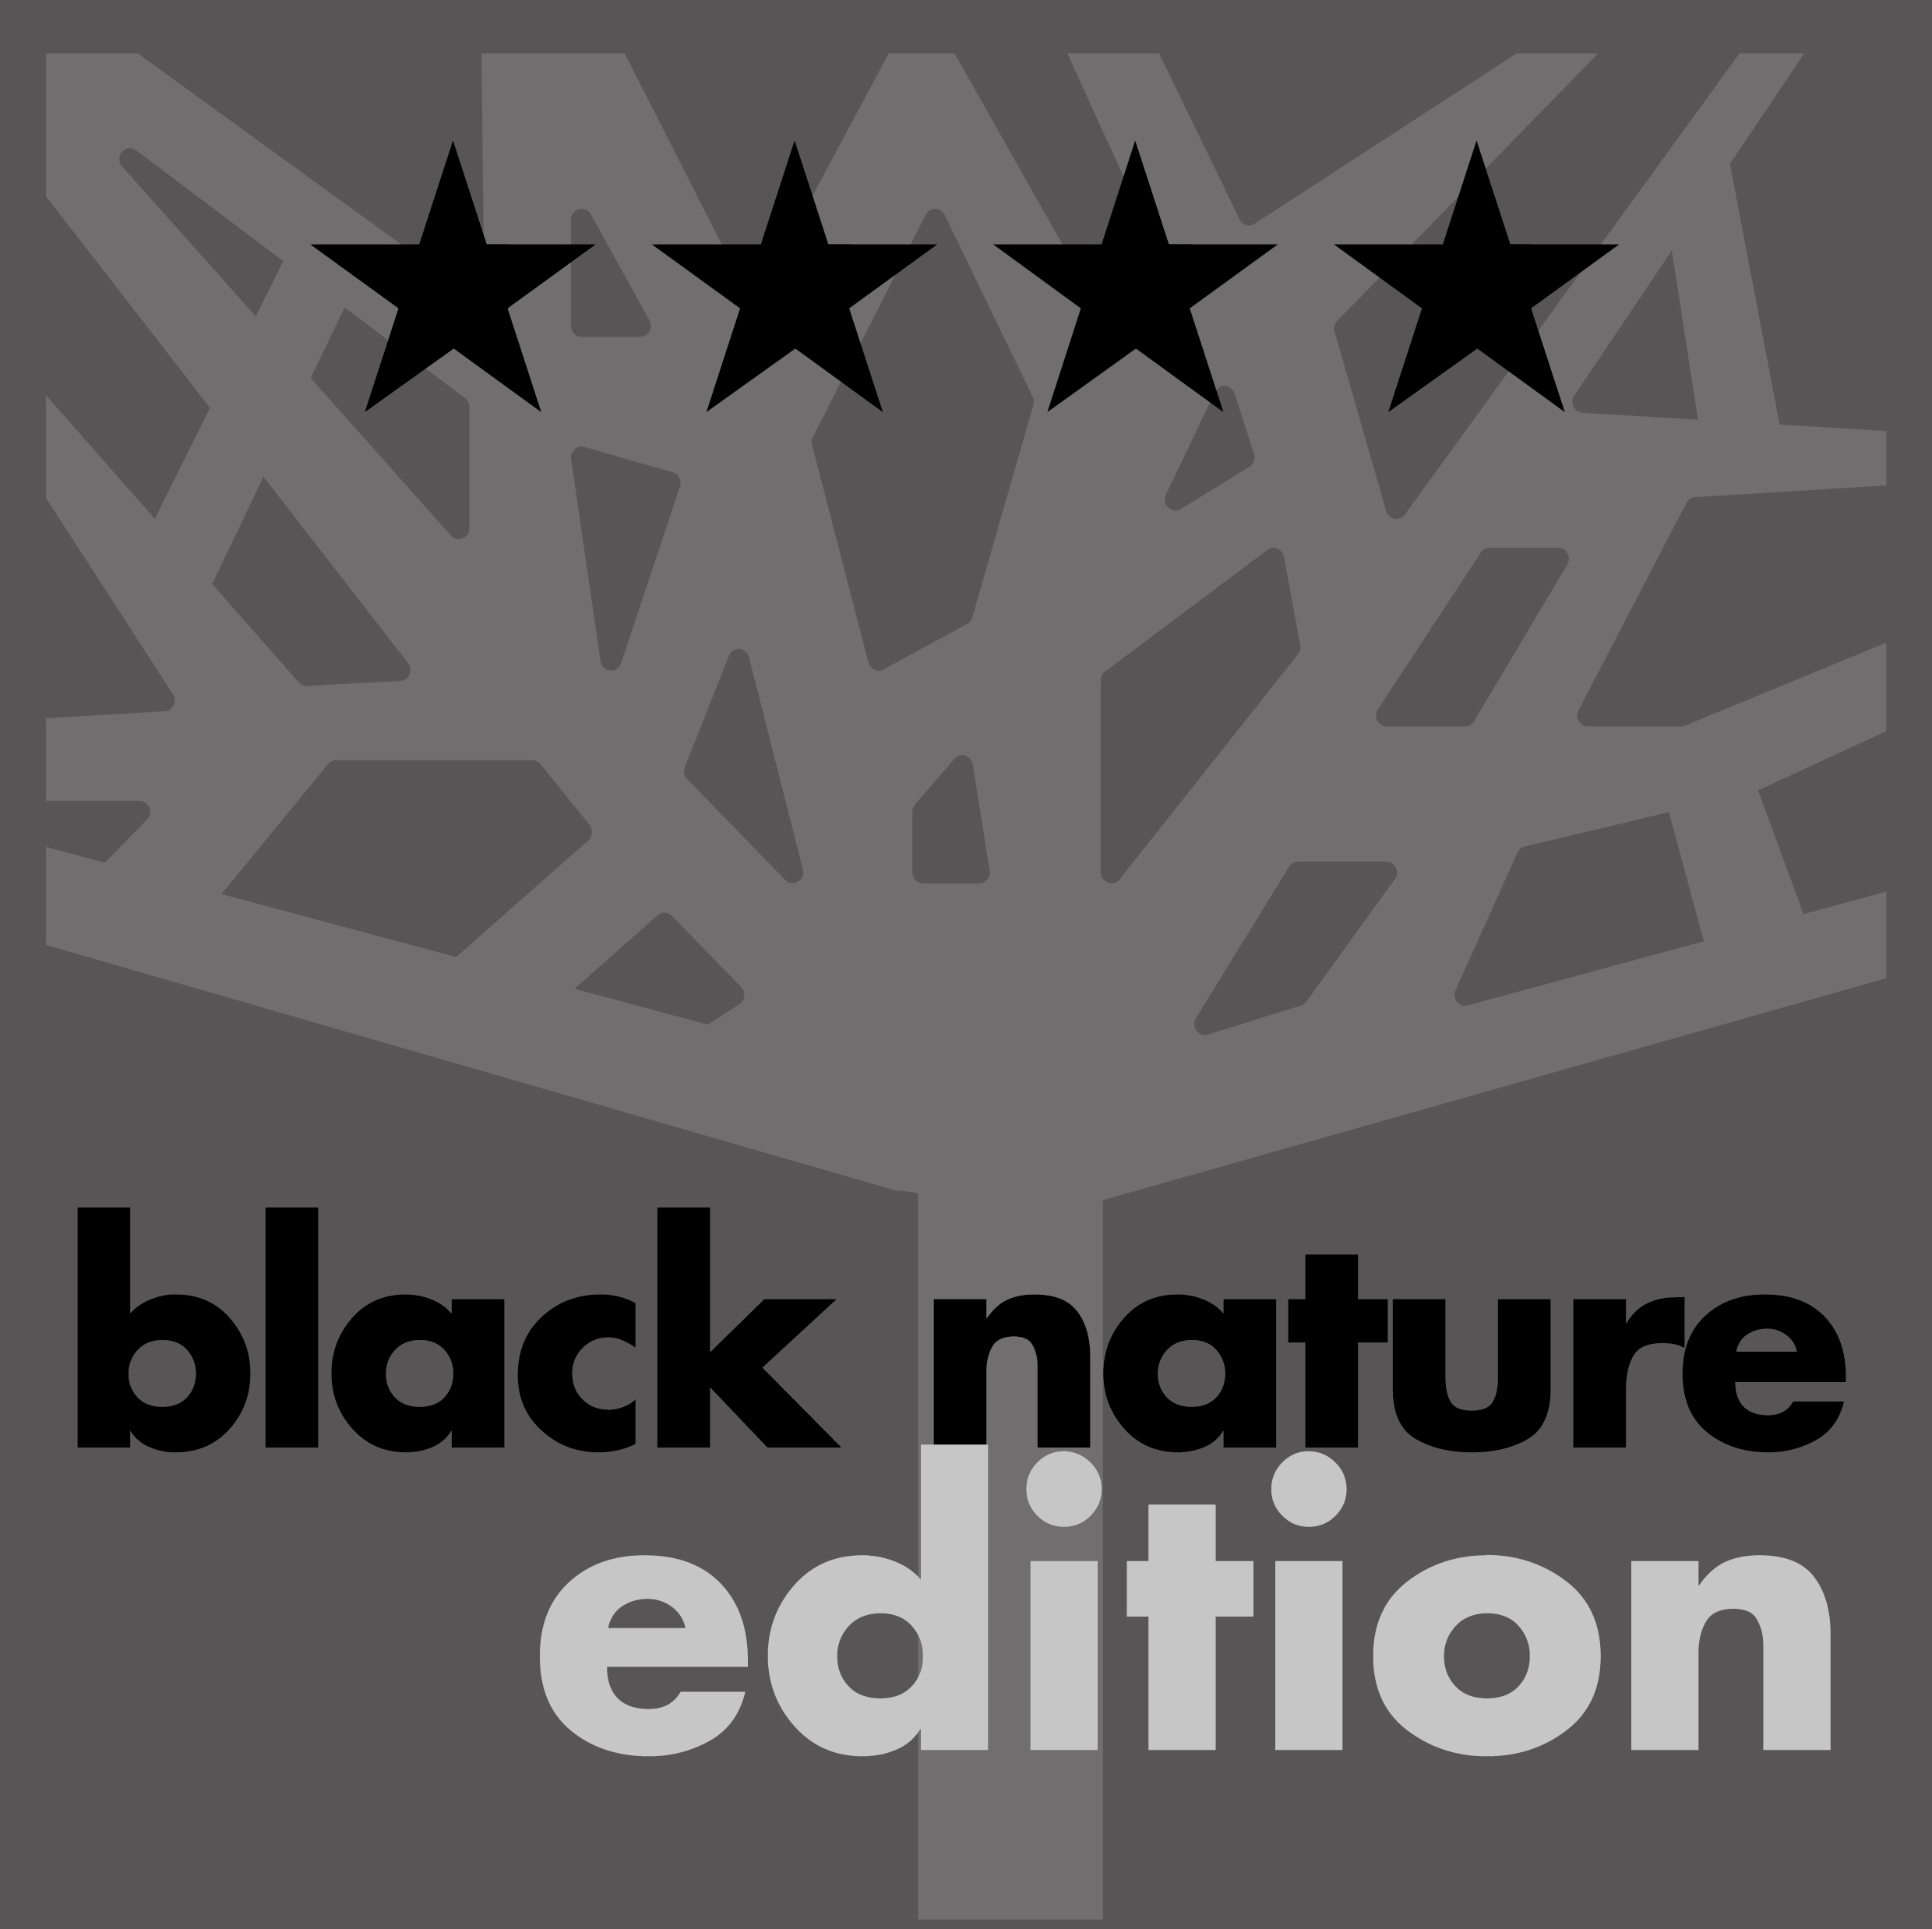 Blacknature Edition